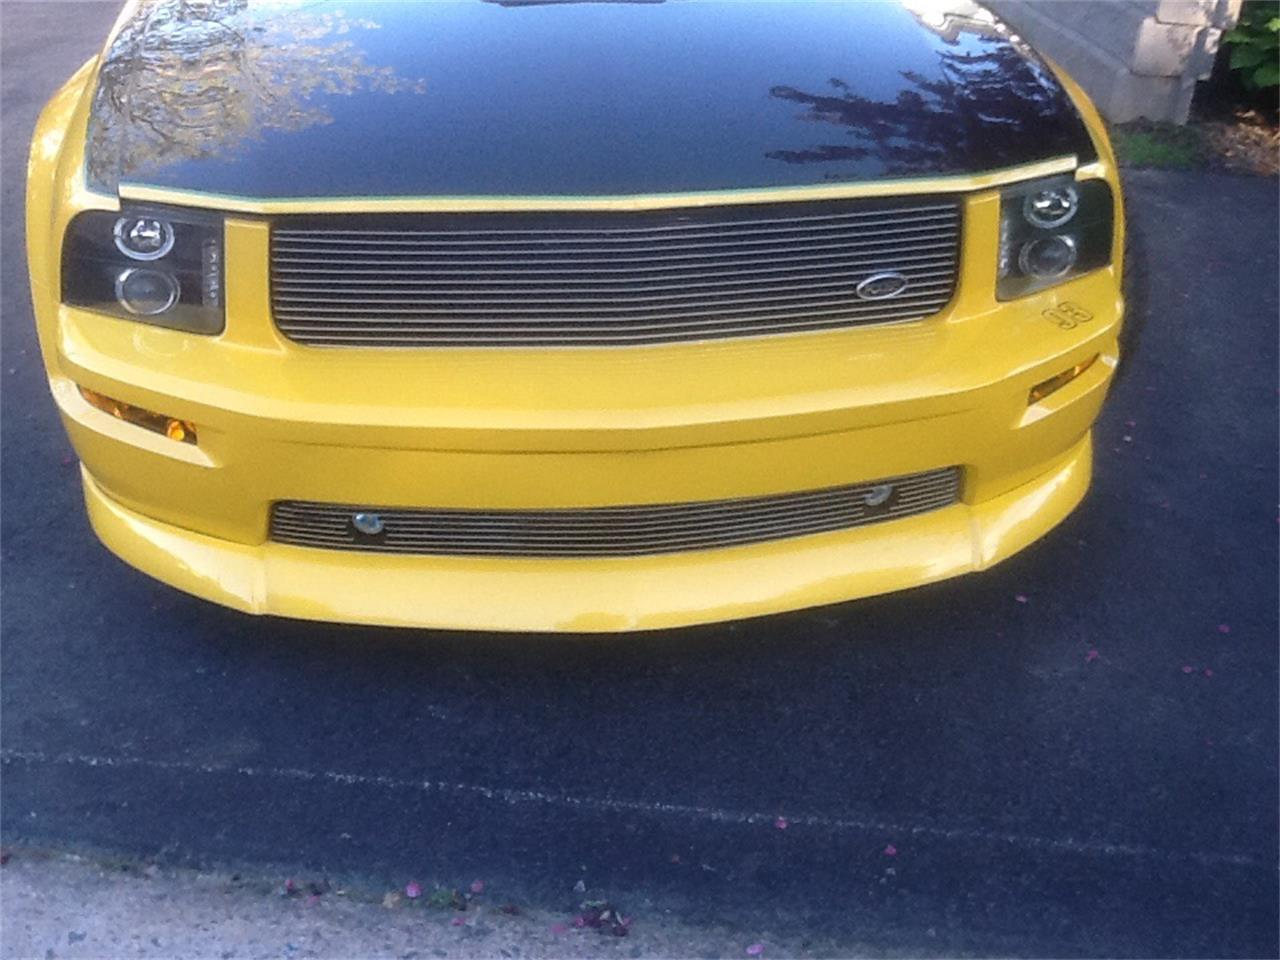 Large Picture of '07 Ford Mustang GT located in Halifax Nova Scotia - $40,000.00 - QCB1